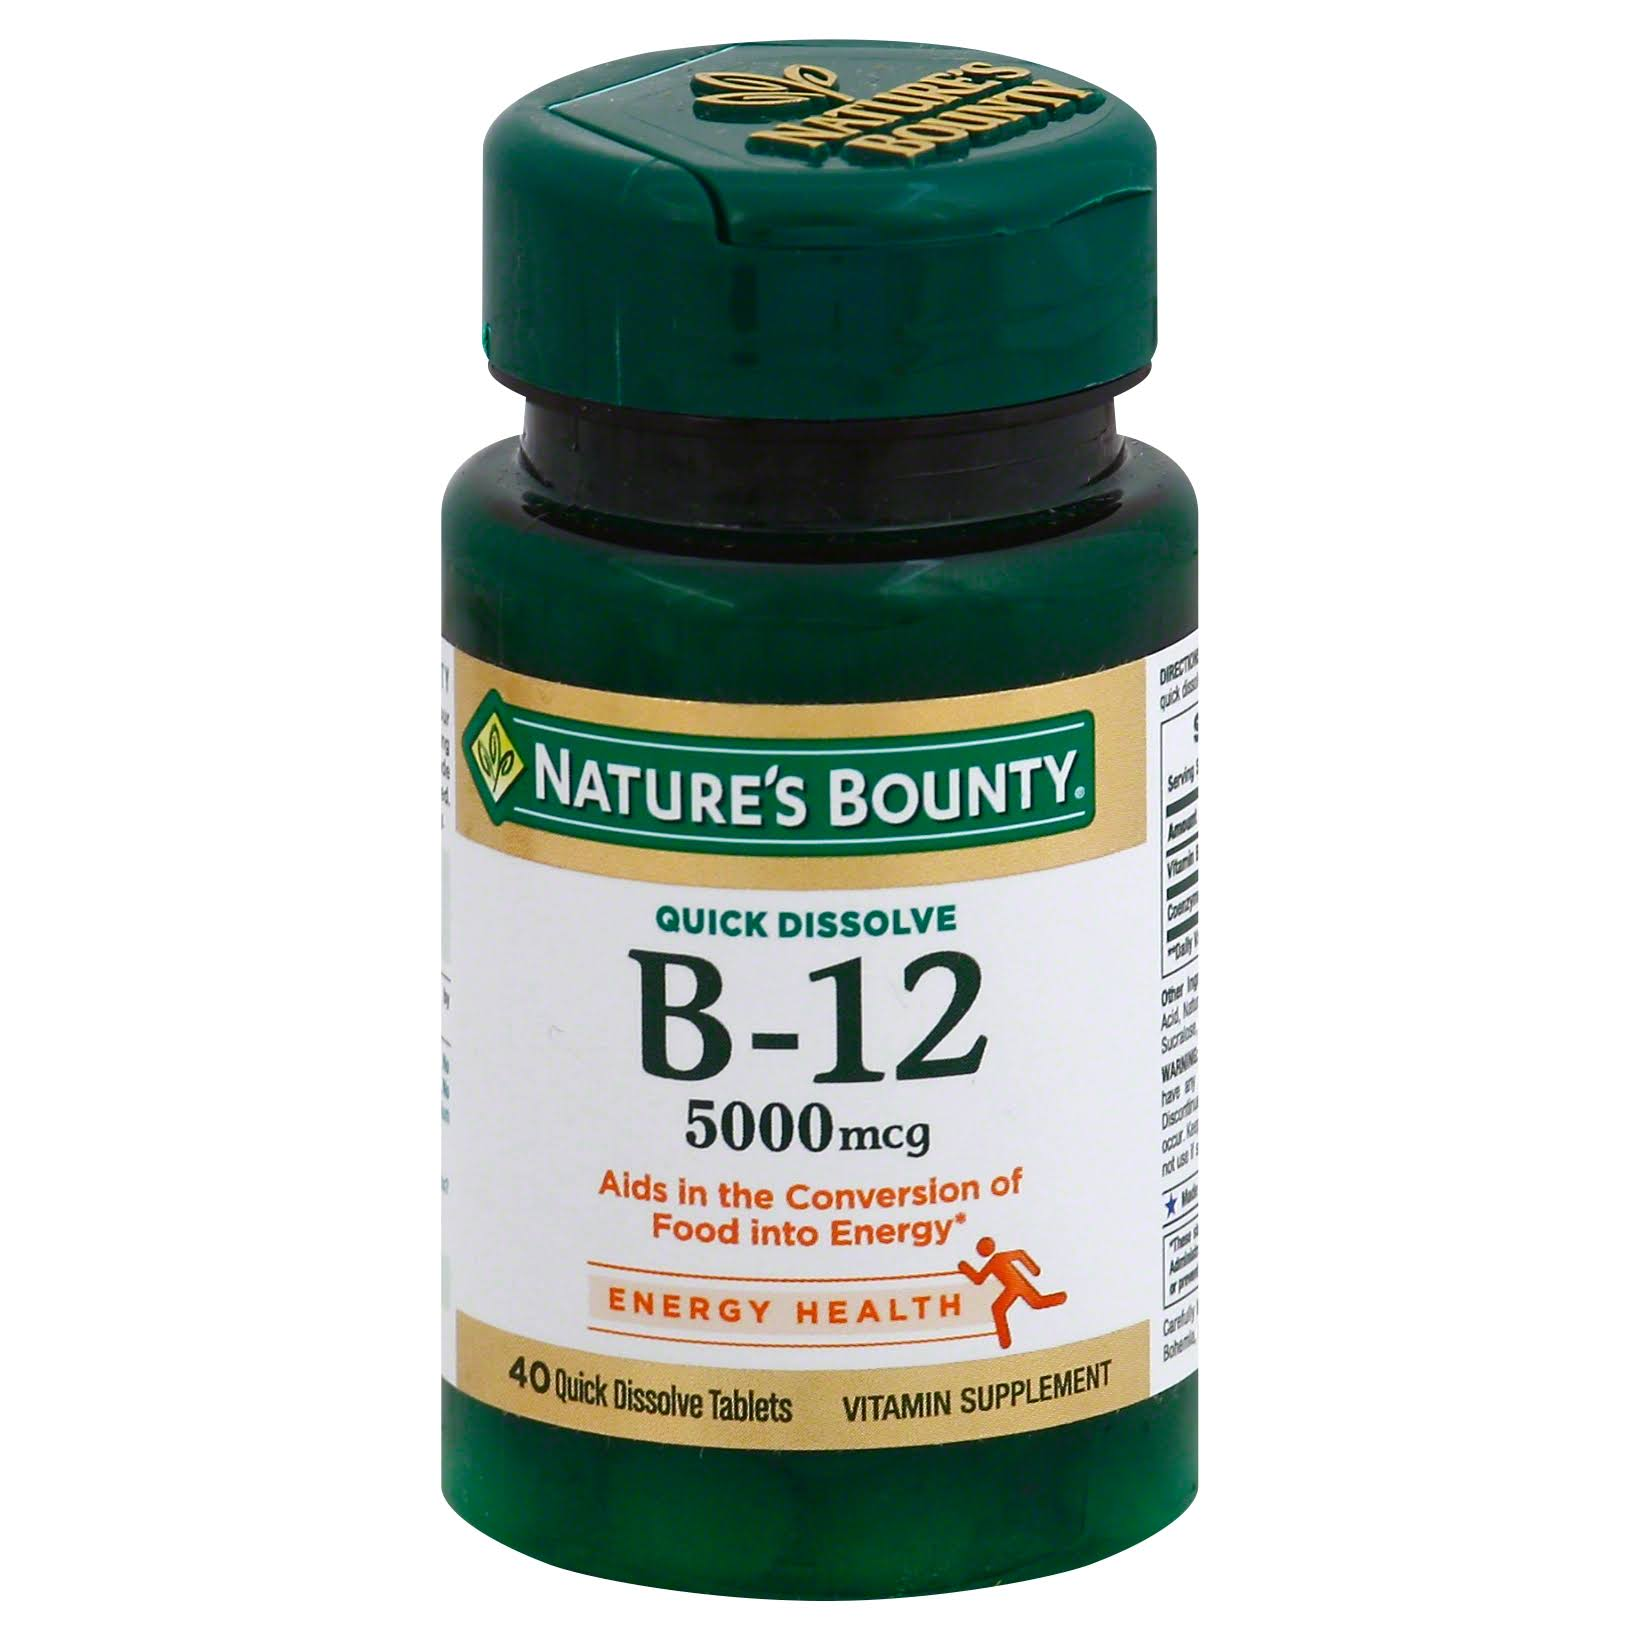 Nature's Bounty B-12 Vitamin Supplement - Natural Cherry, 5000mcg, 40ct